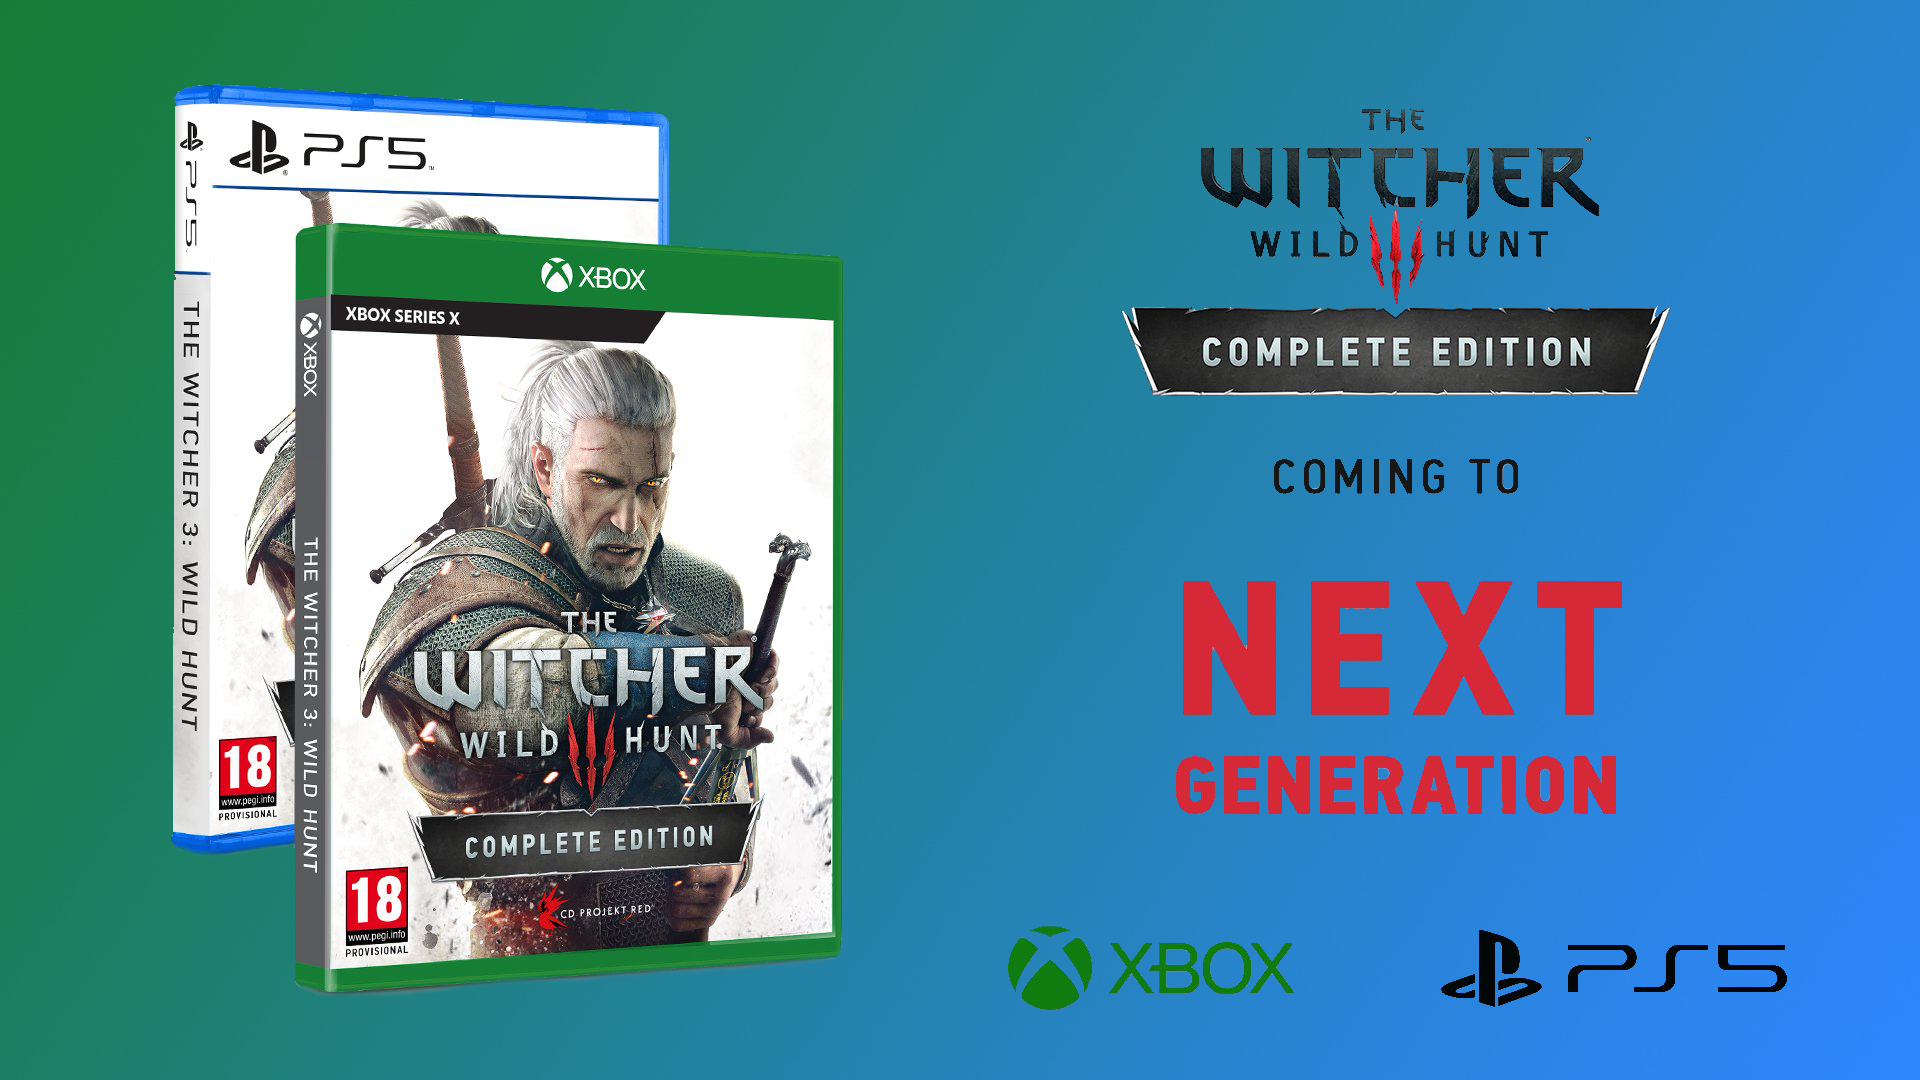 The Witcher 3 new generation